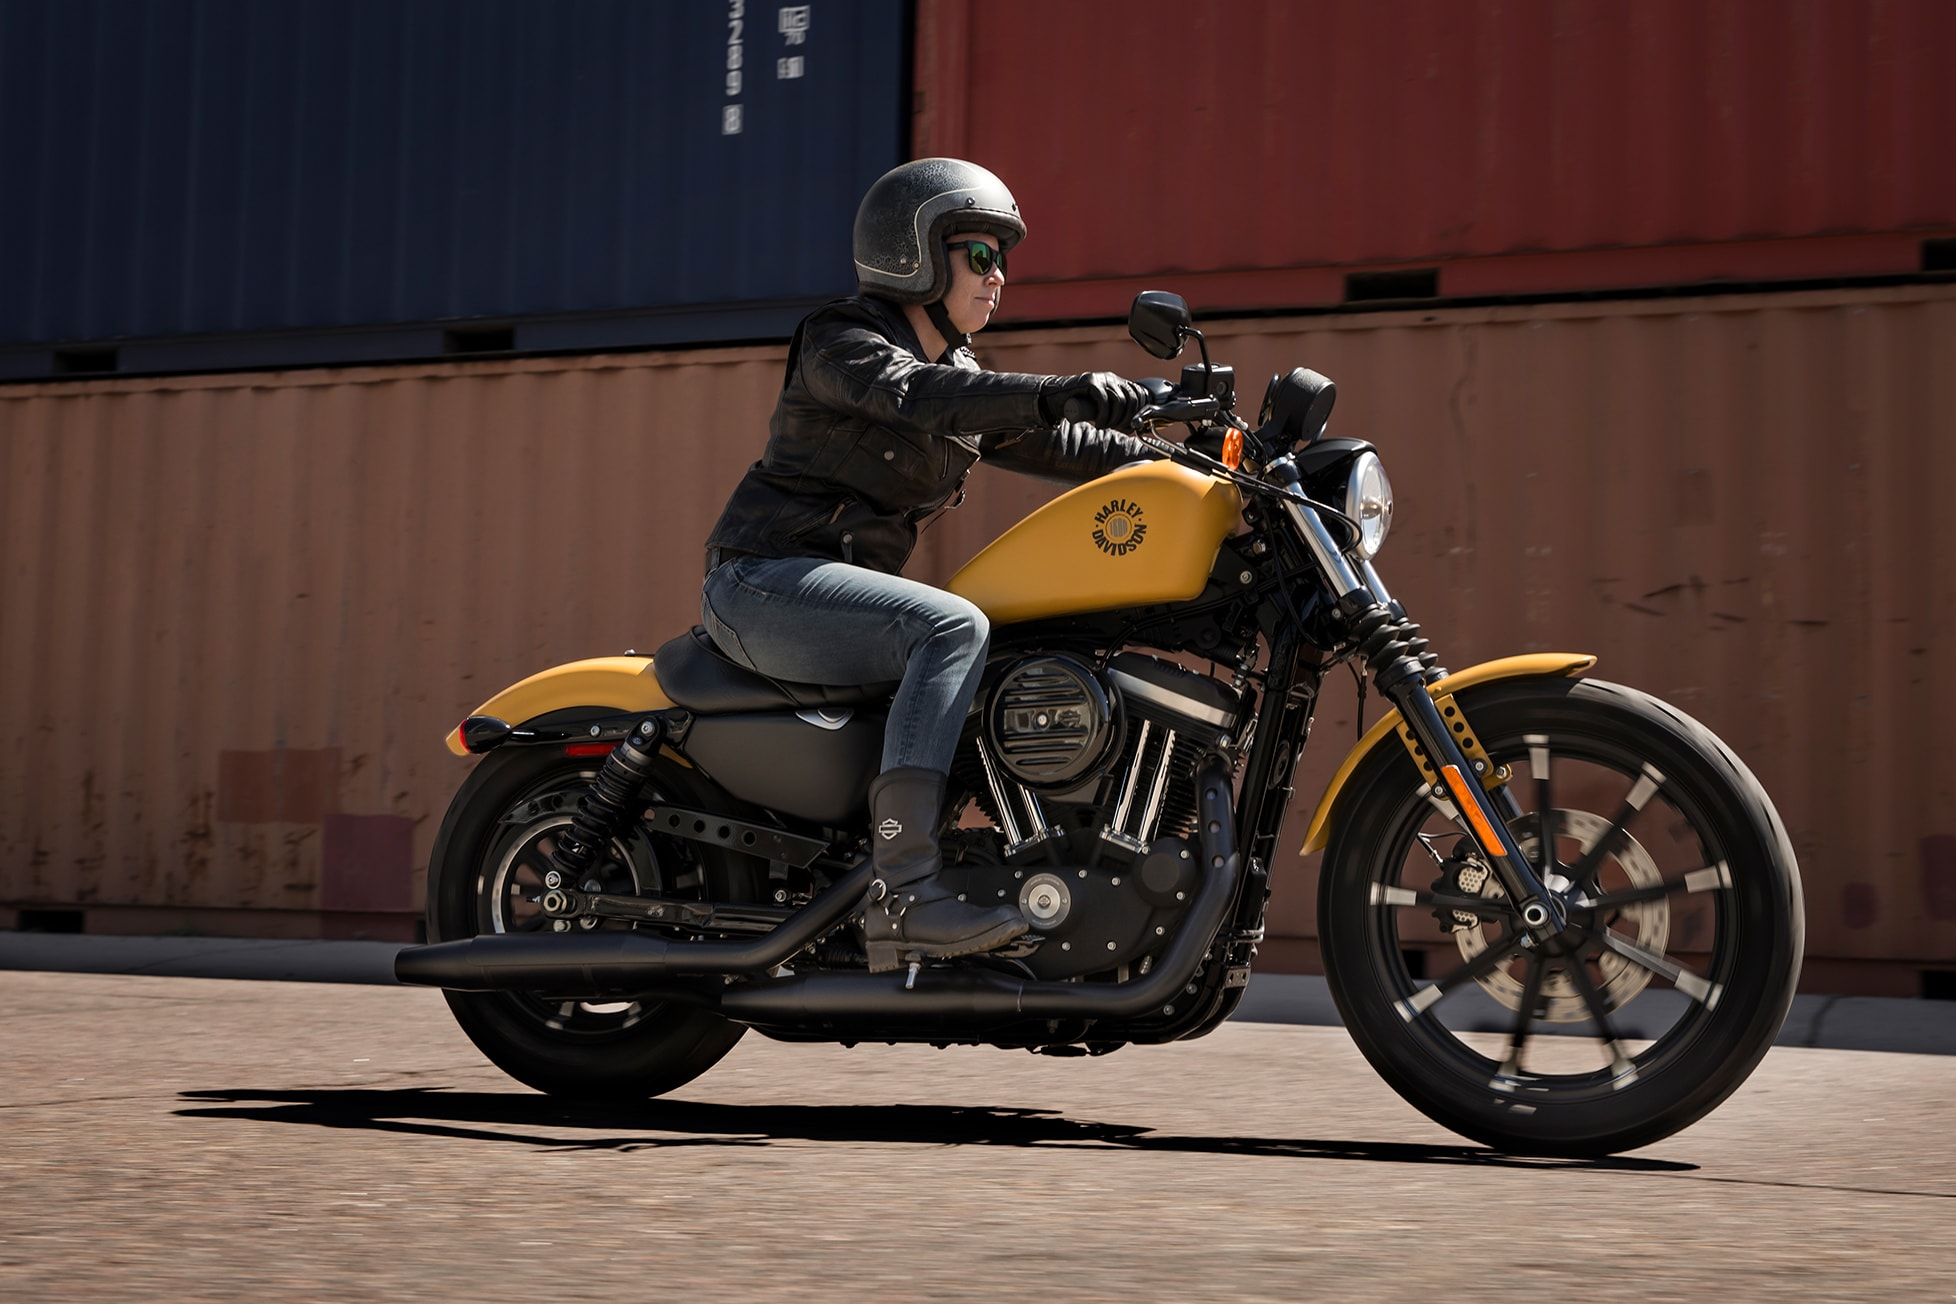 small resolution of woman riding a 2019 iron 883 motorcycle